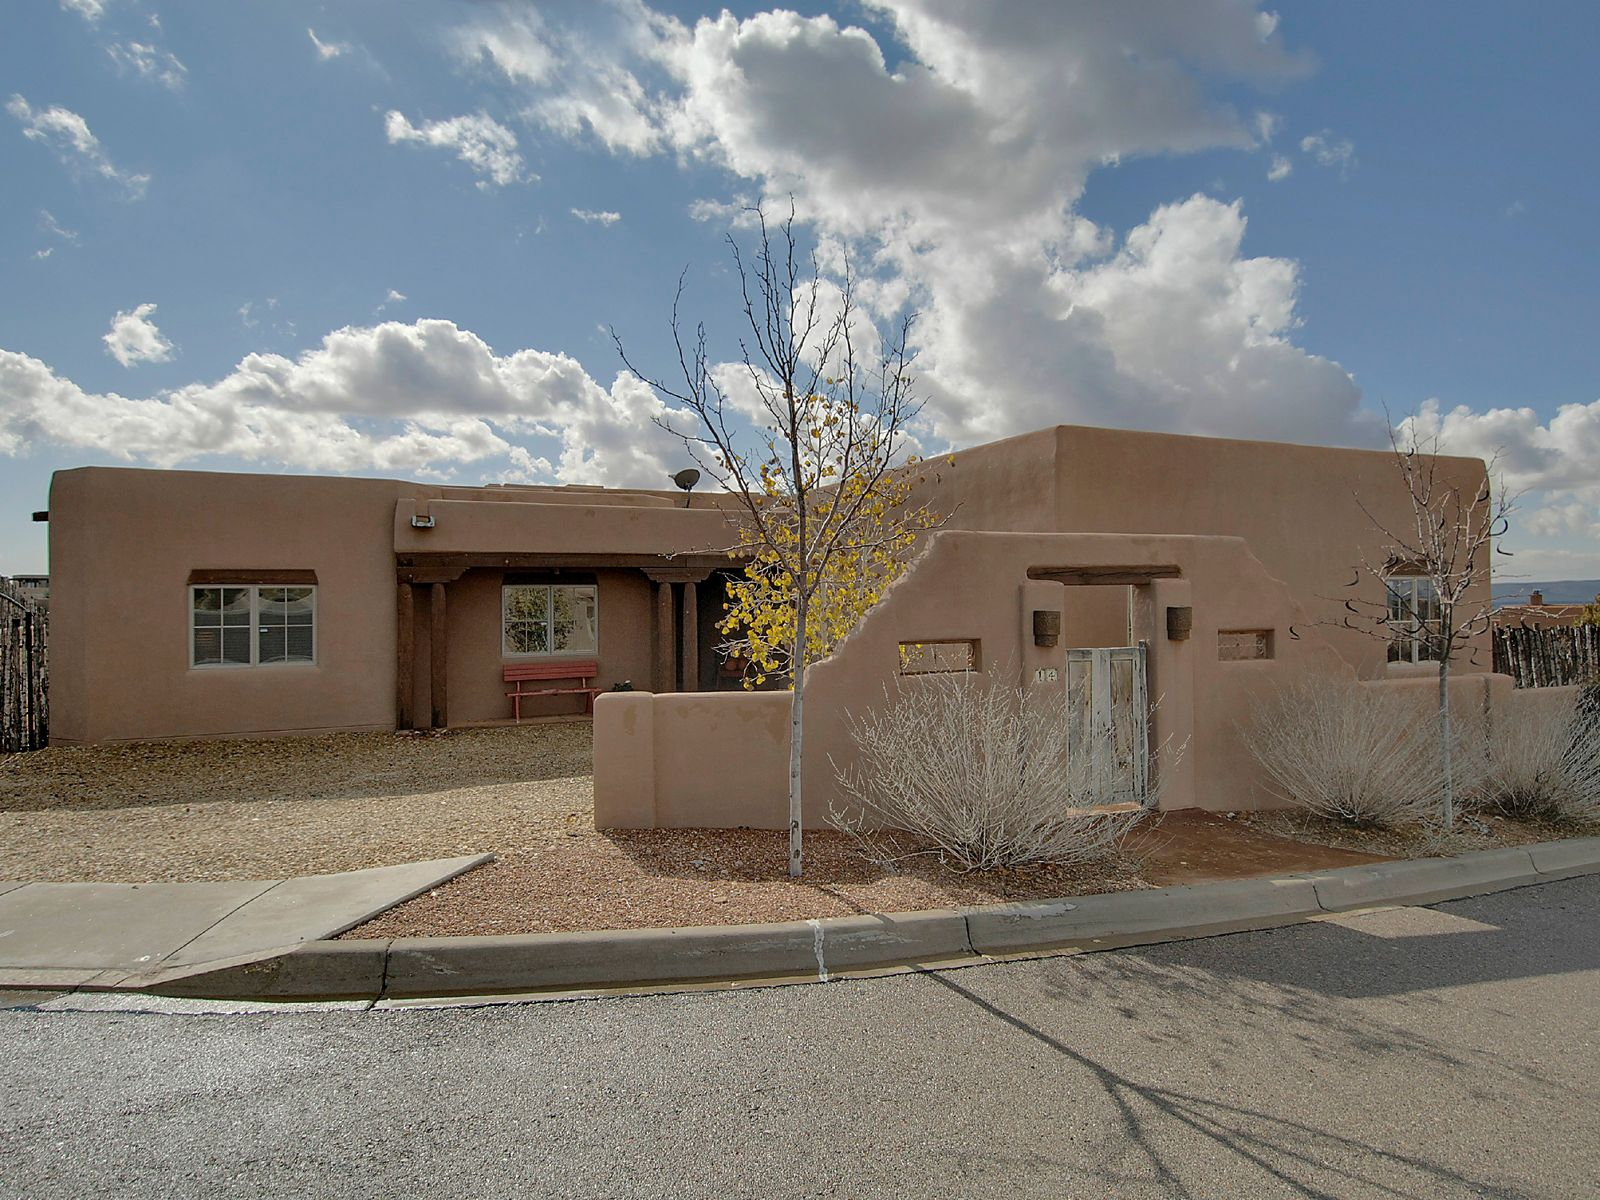 14 Altura Vista, Santa Fe NM Single Family Home - Santa Fe Real Estate